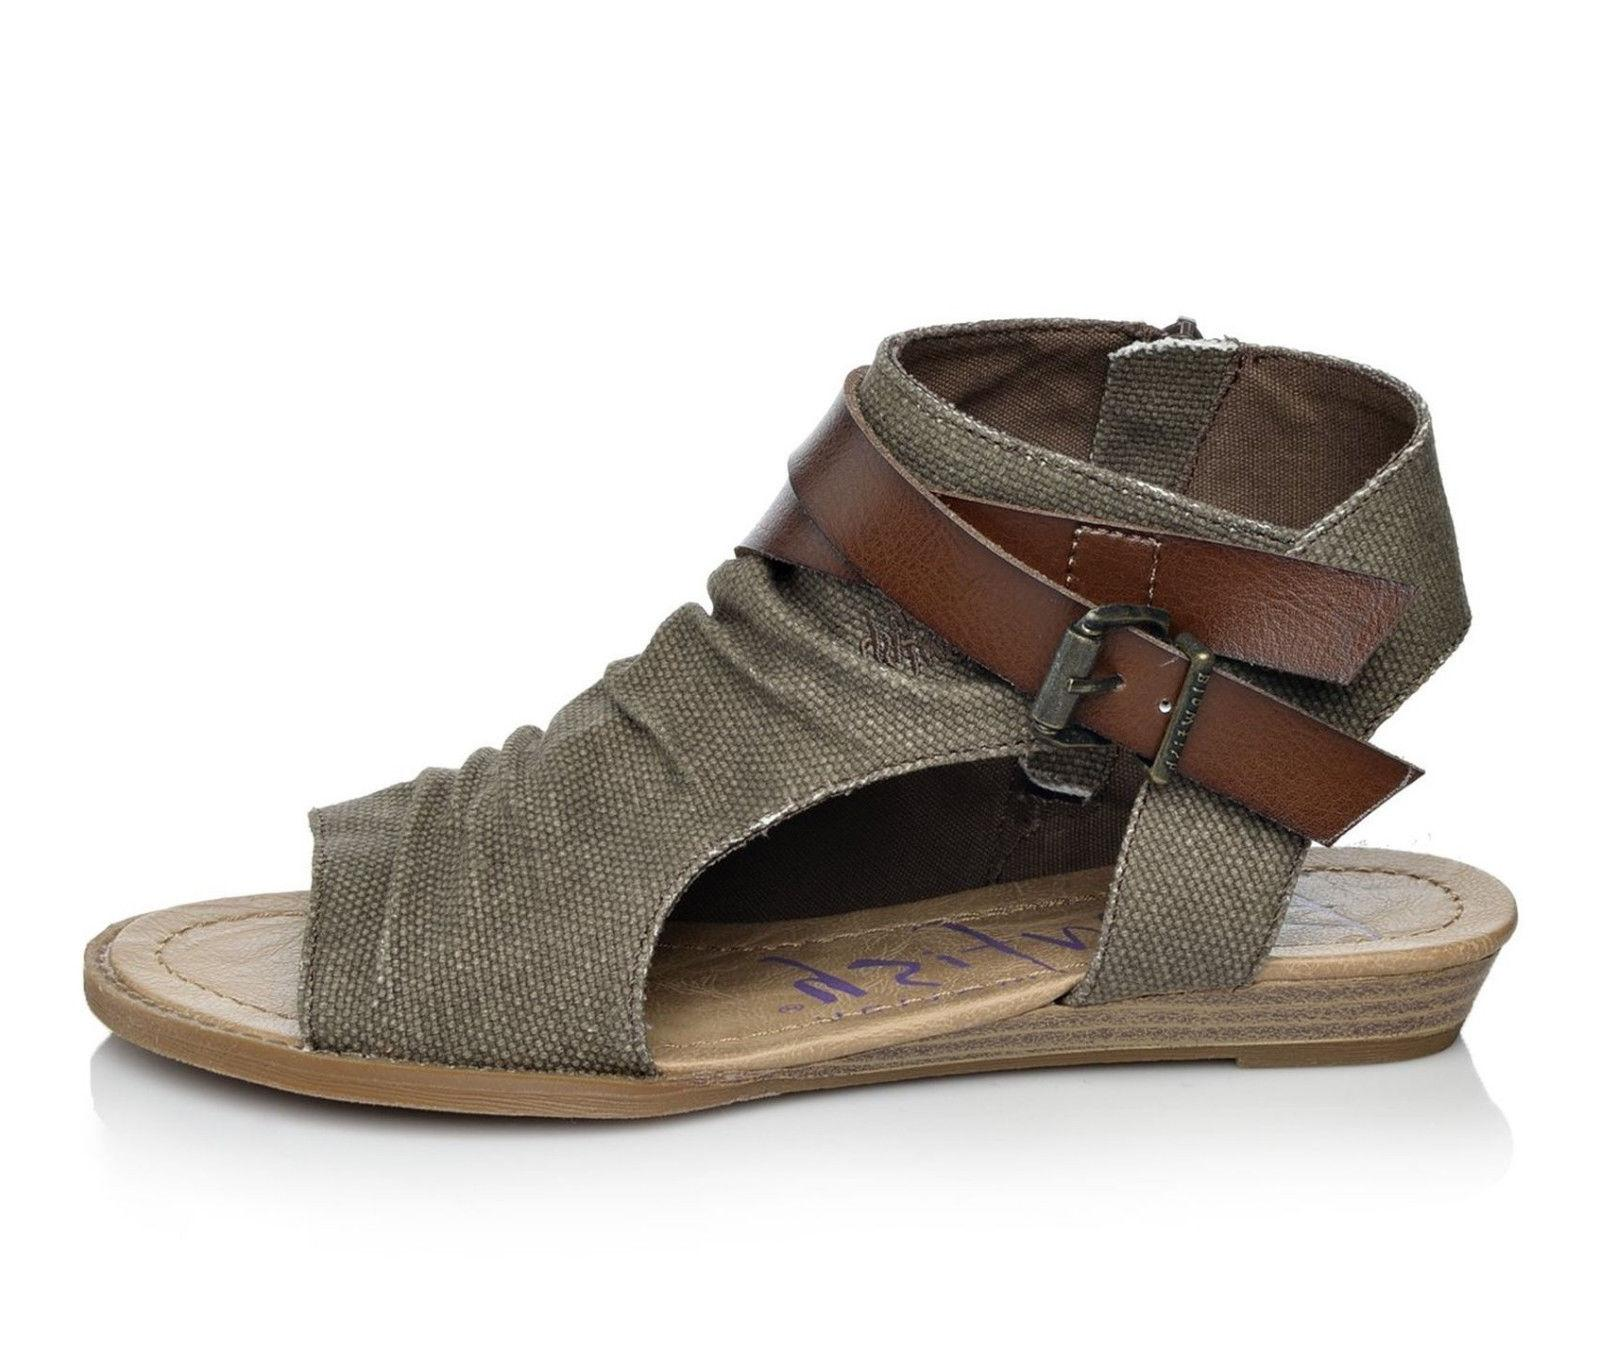 Blowfish Brown Sandals - Sizes 7